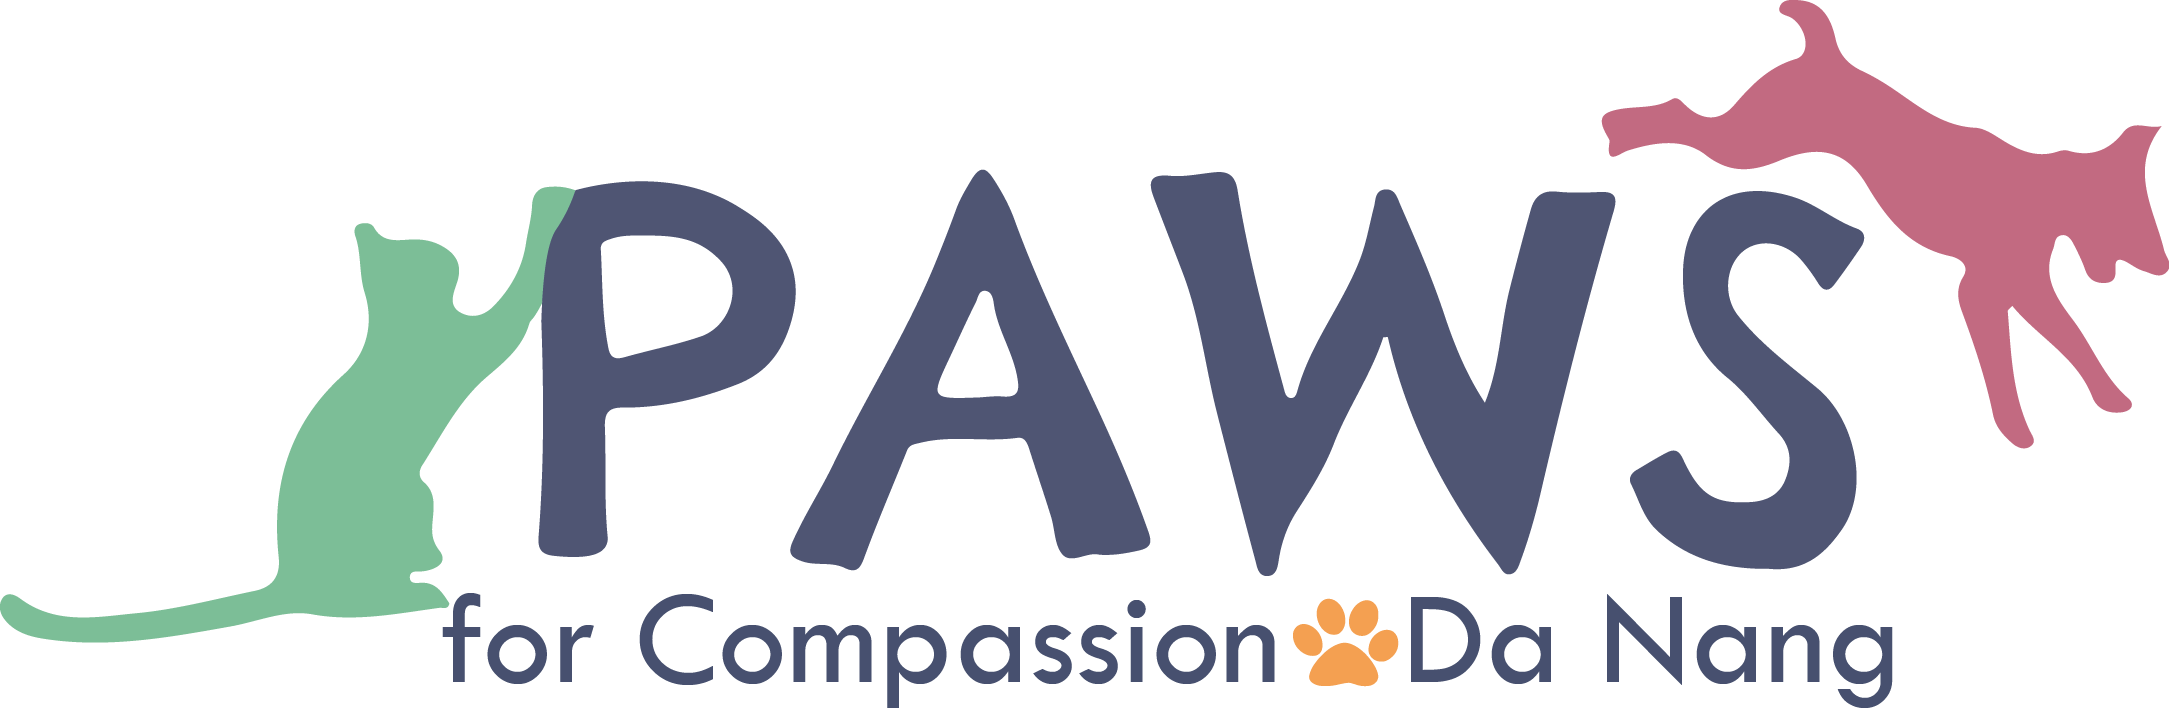 Paws-logo-updated.png